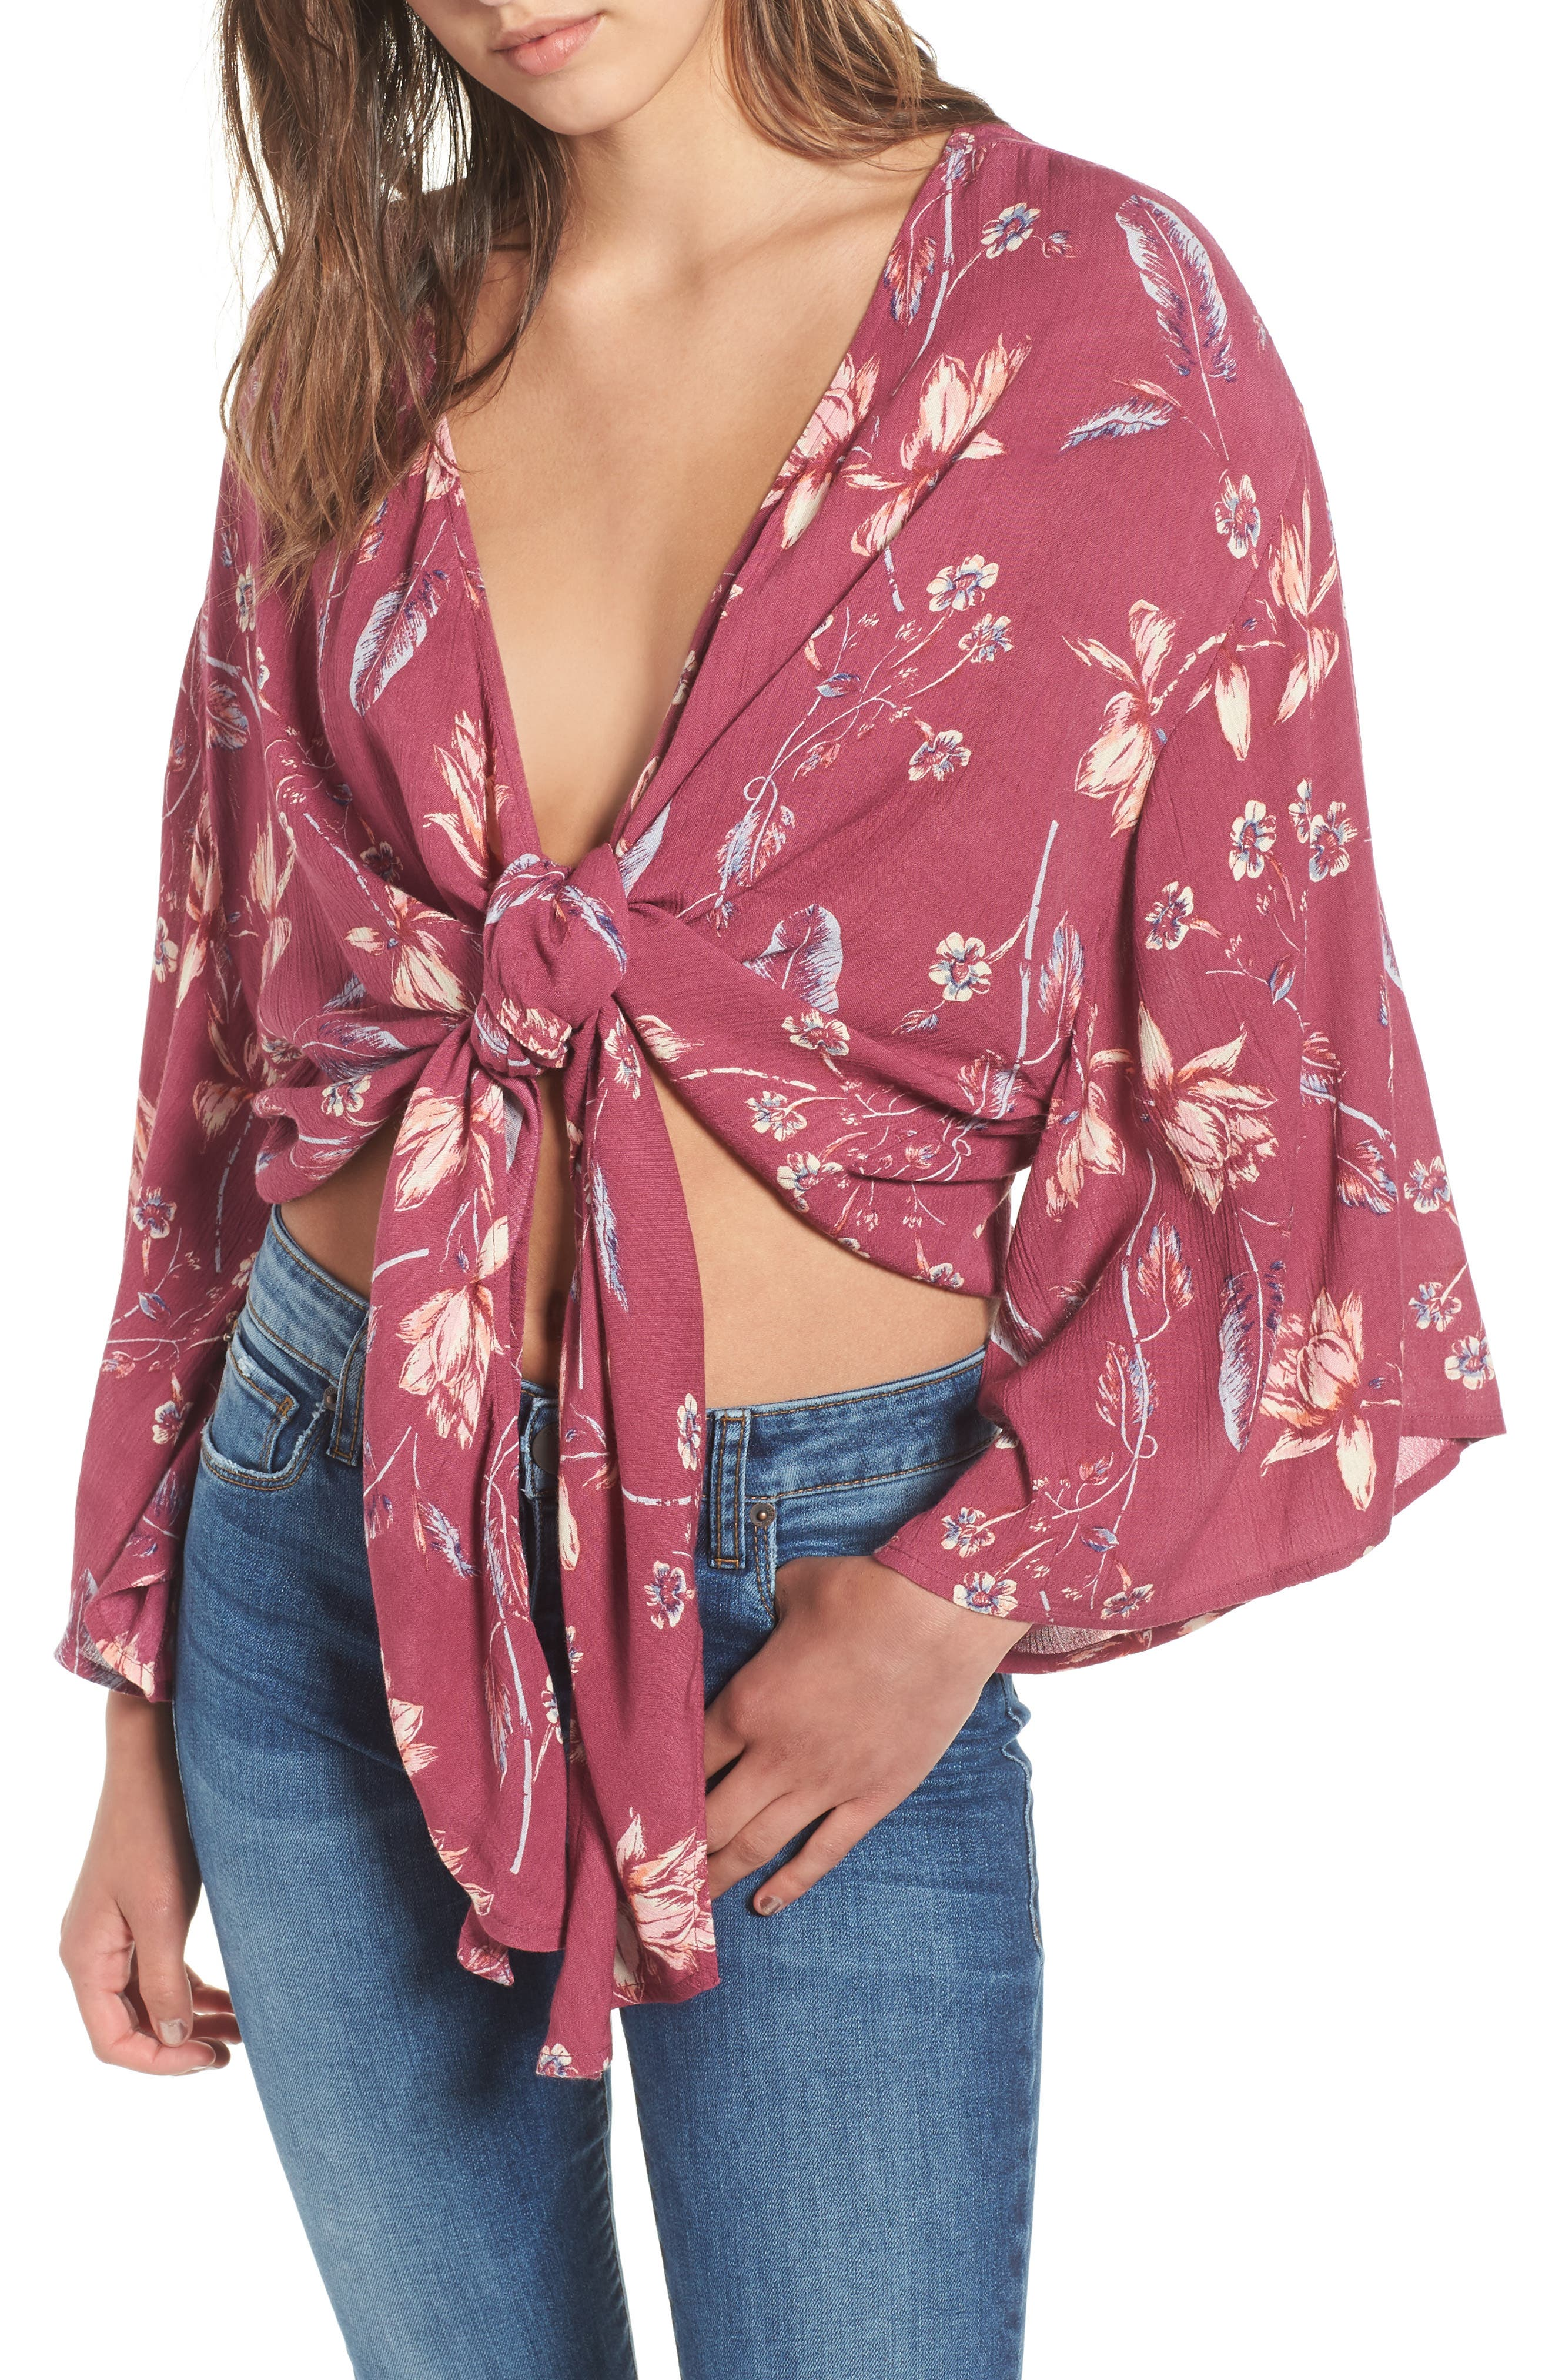 Sometimes Yours Knot Front Top,                             Main thumbnail 1, color,                             930